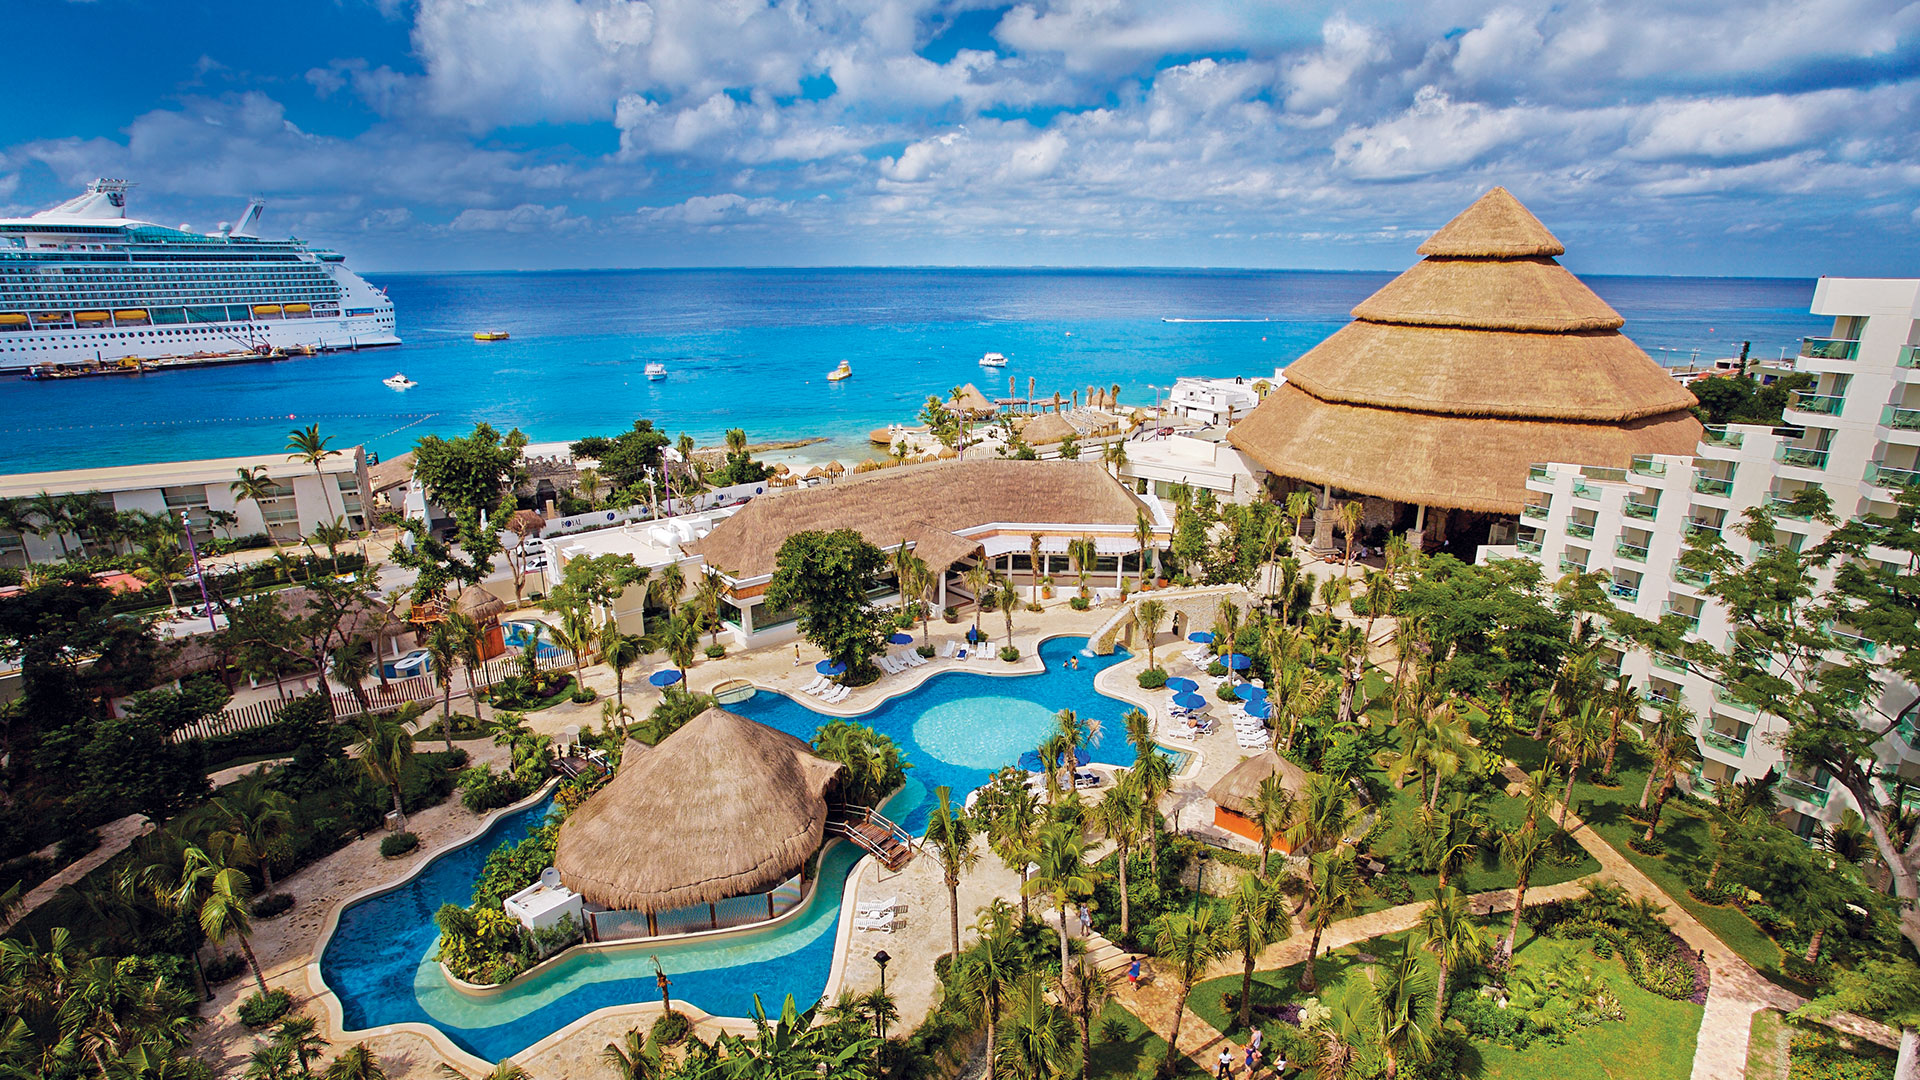 Royal-holiday-hotel-resort-grand-park-royal-cozumel-mexico-quintana-roo-cozumel